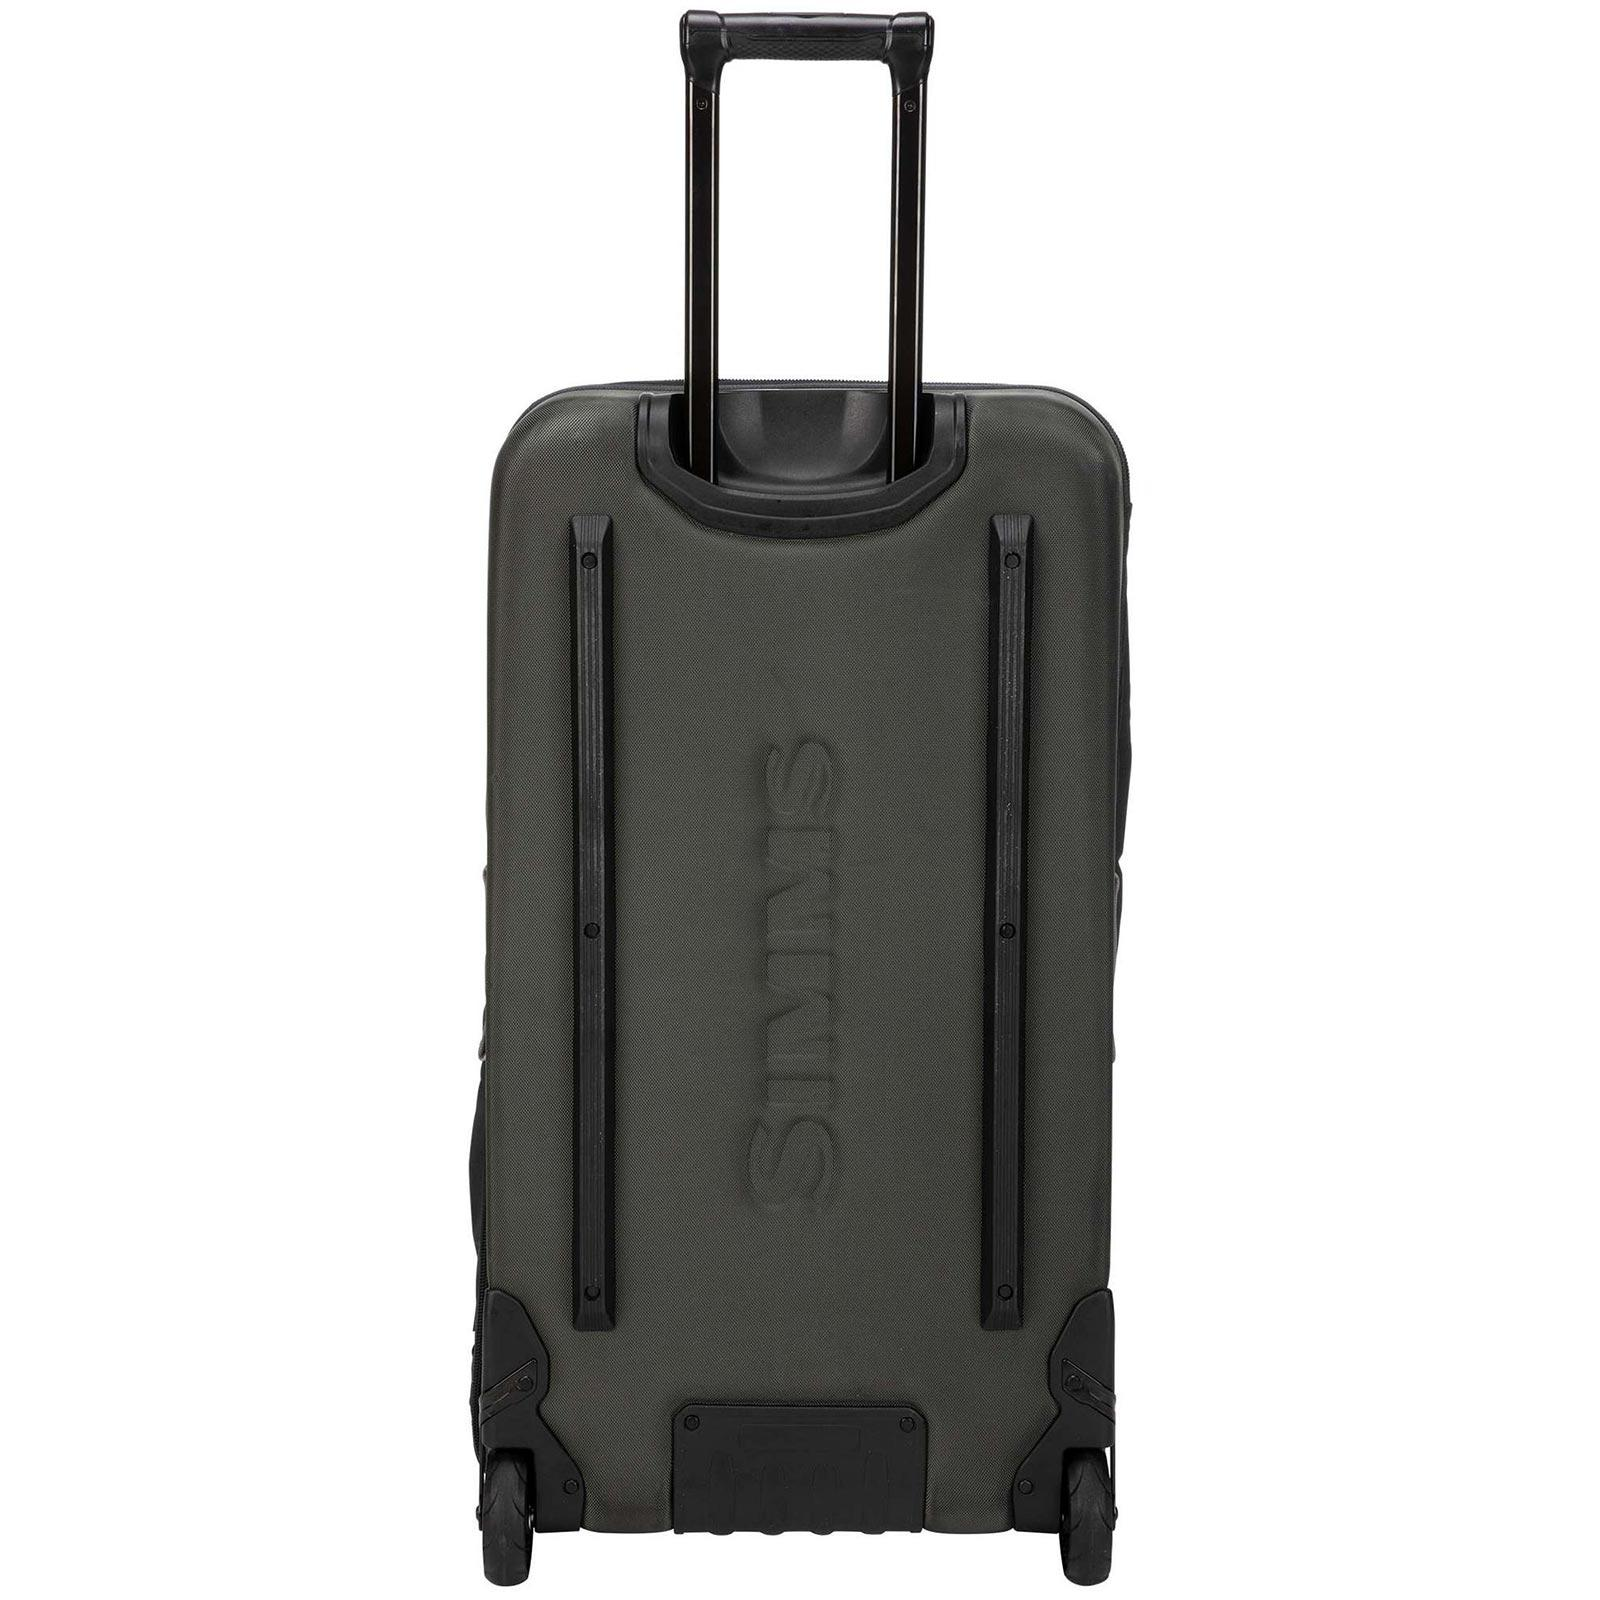 Simms GTS Roller Bag - Back View